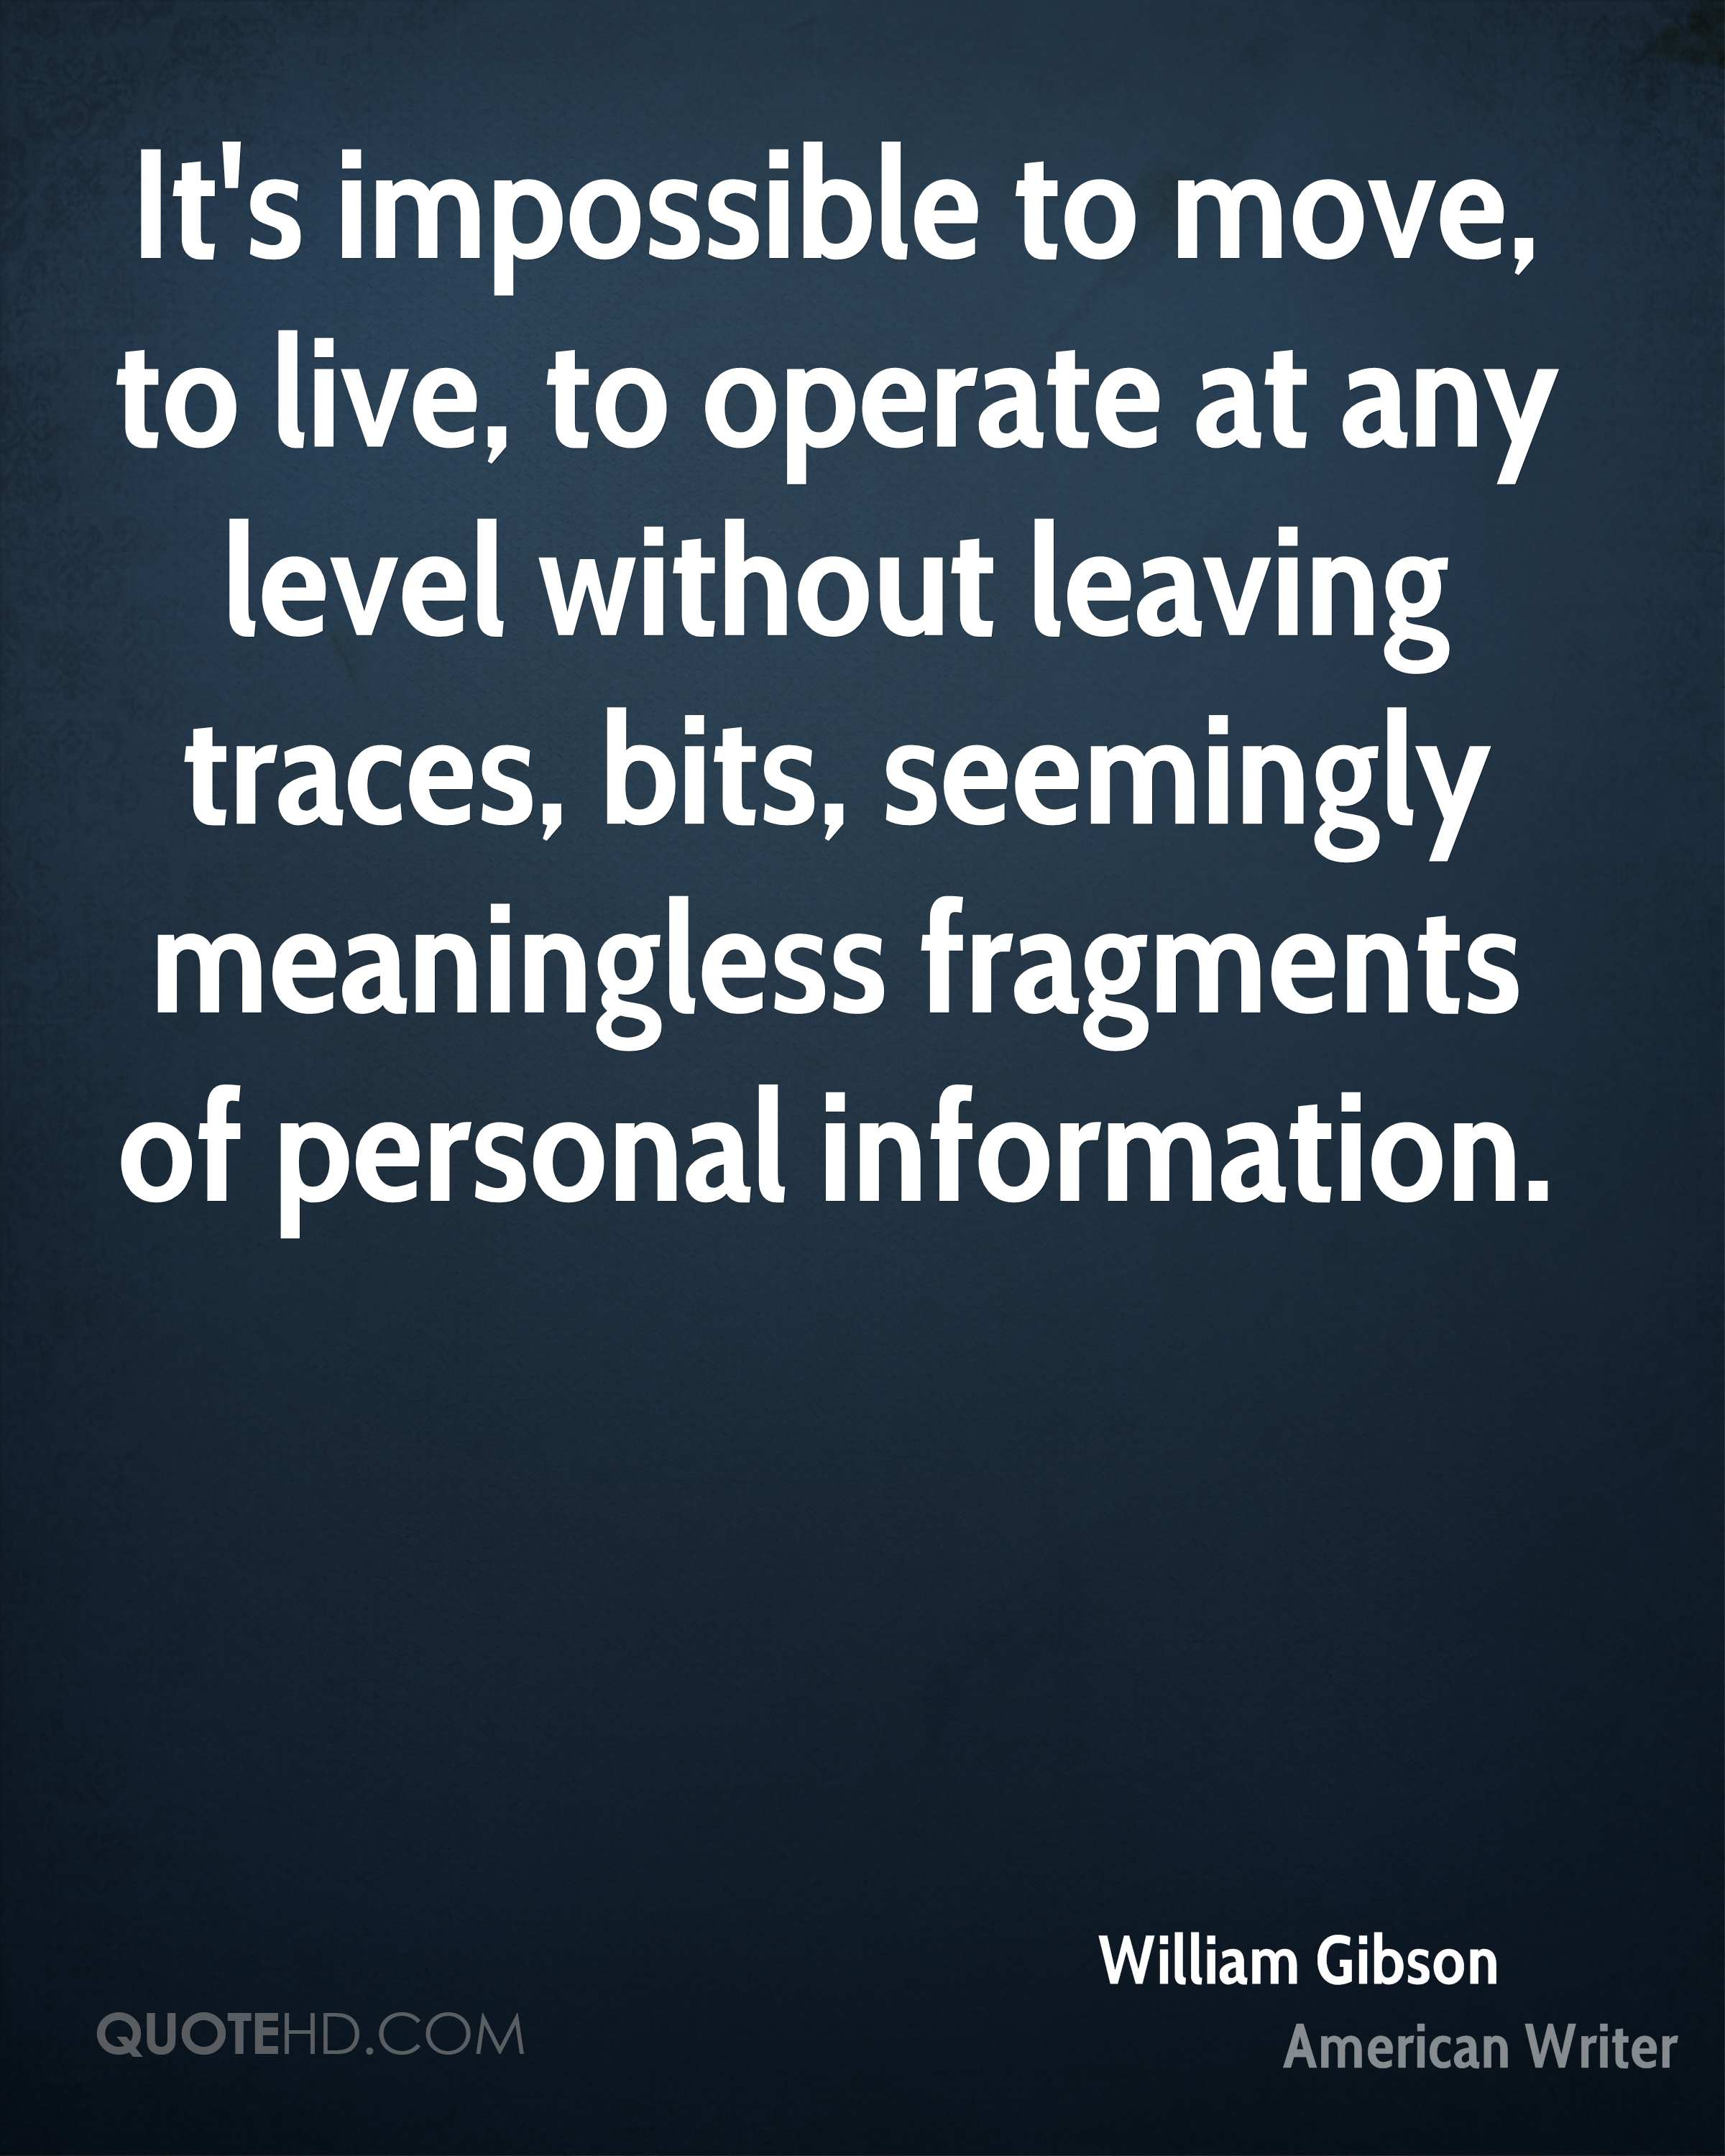 It's impossible to move, to live, to operate at any level without leaving traces, bits, seemingly meaningless fragments of personal information.